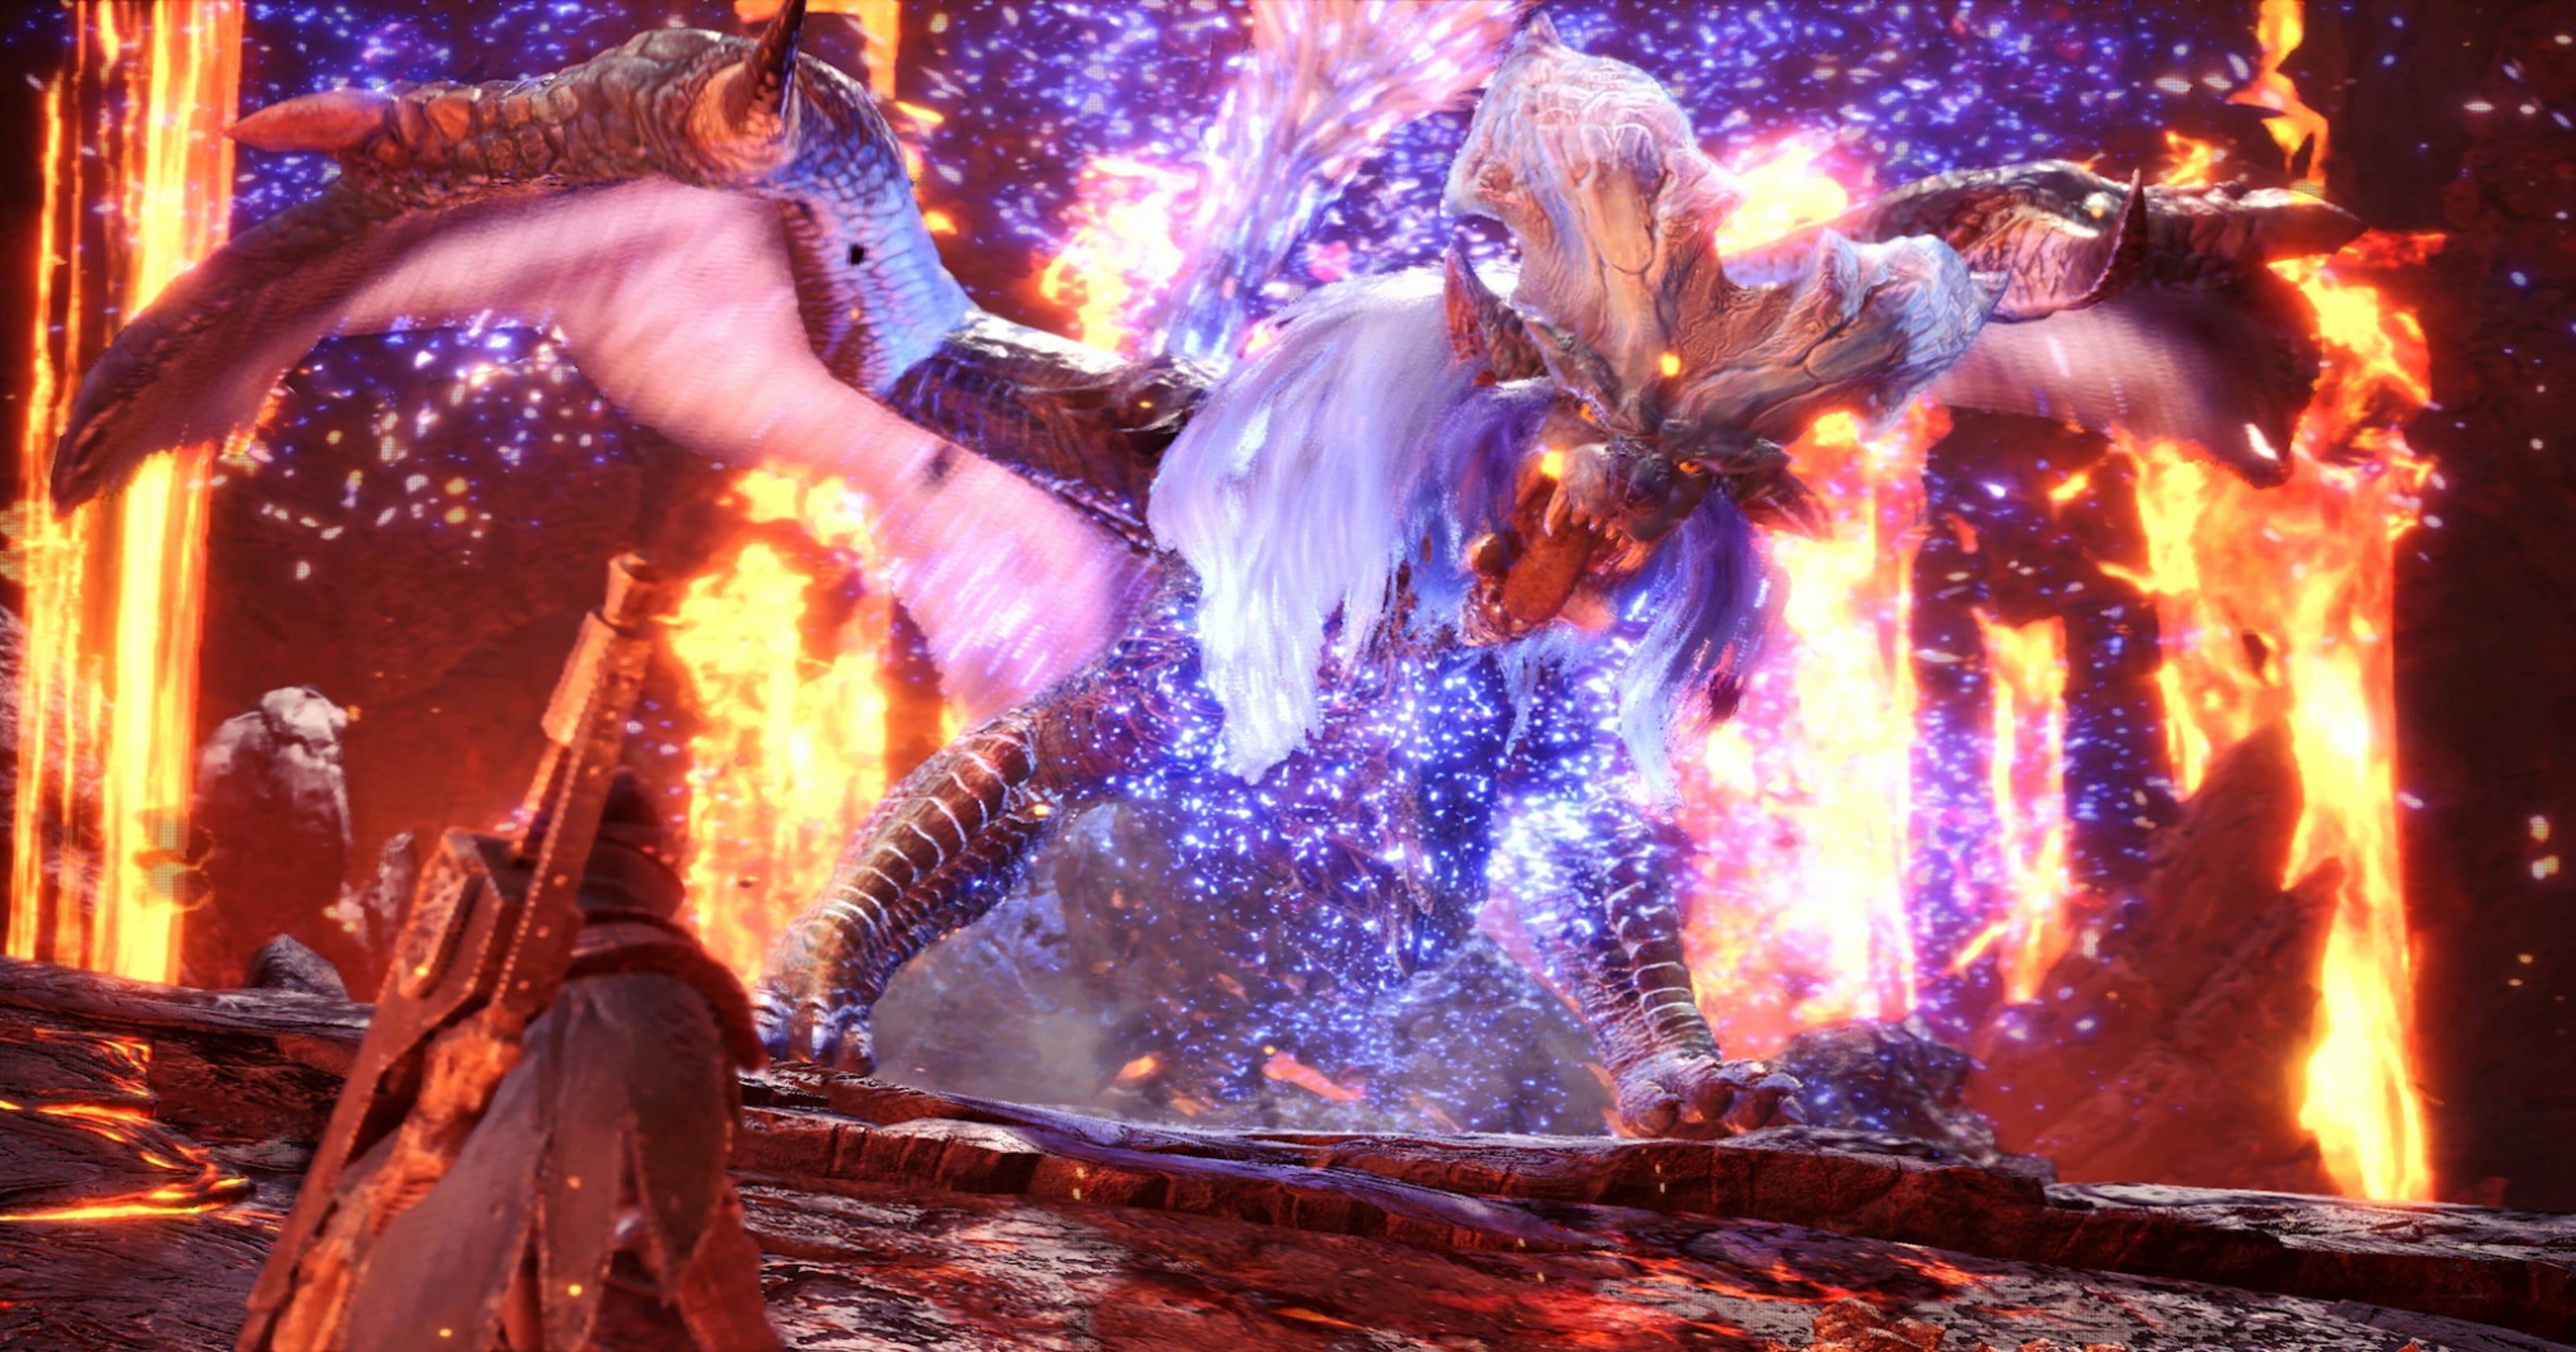 MHW dev talk: Lunastra tips and armor, auto-dodging and arch